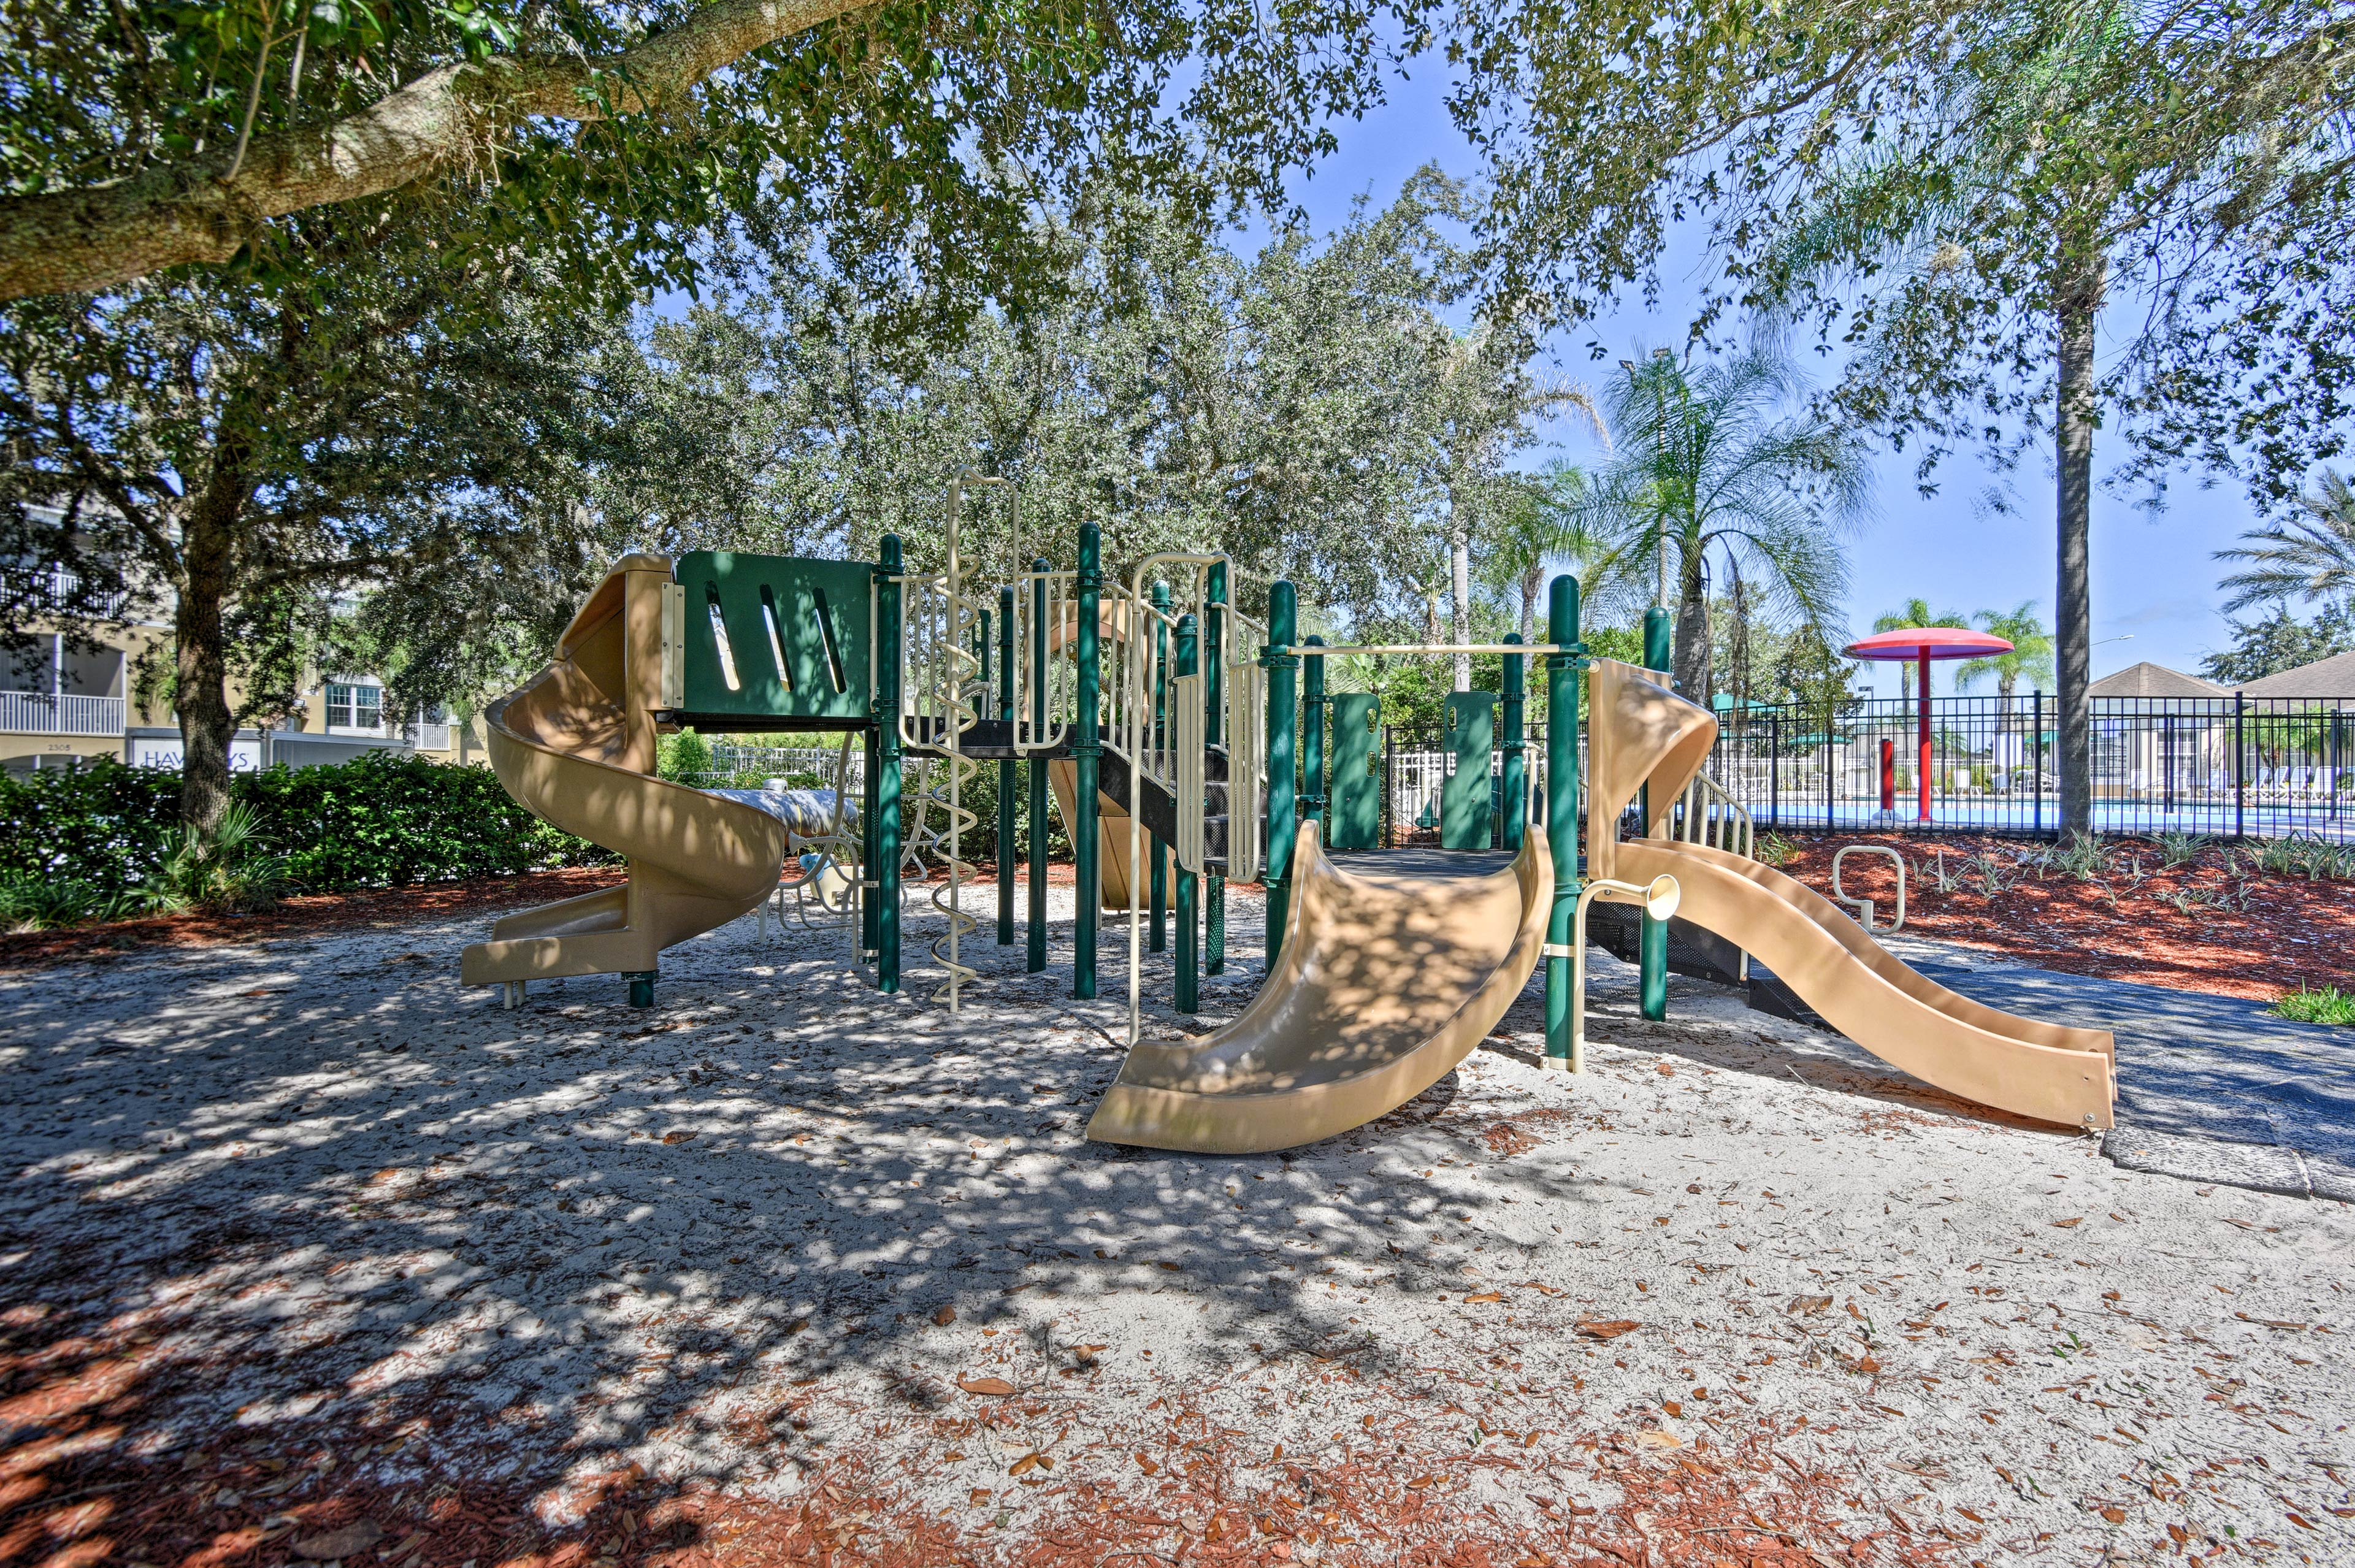 Let your kids burn off some energy at the playground.